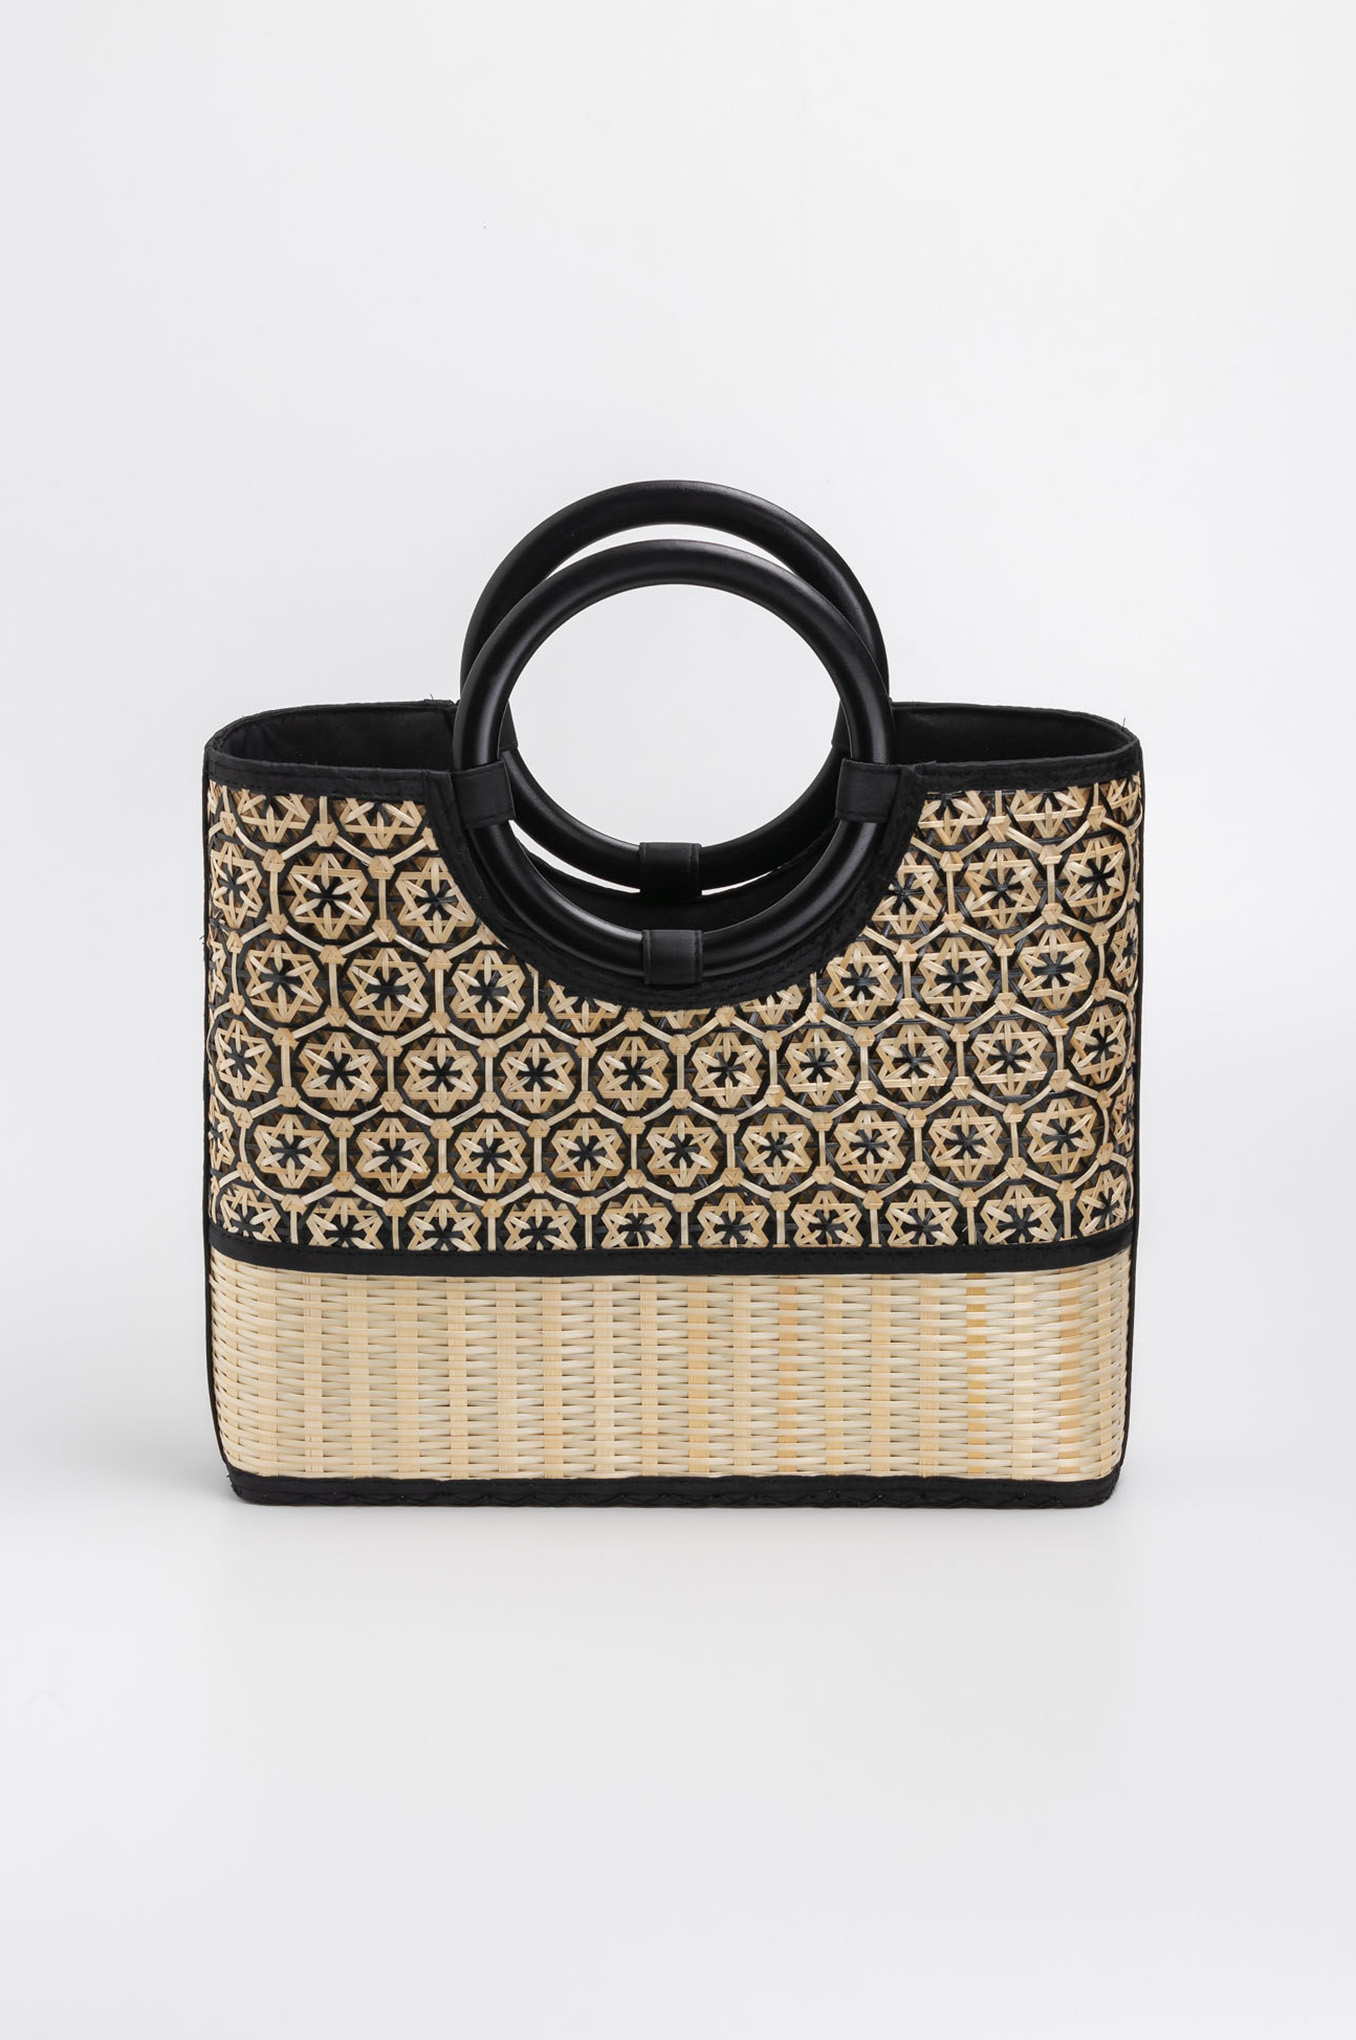 f036712c57 bagssscollection00010.jpg product product bagssscollection00010.jpg product